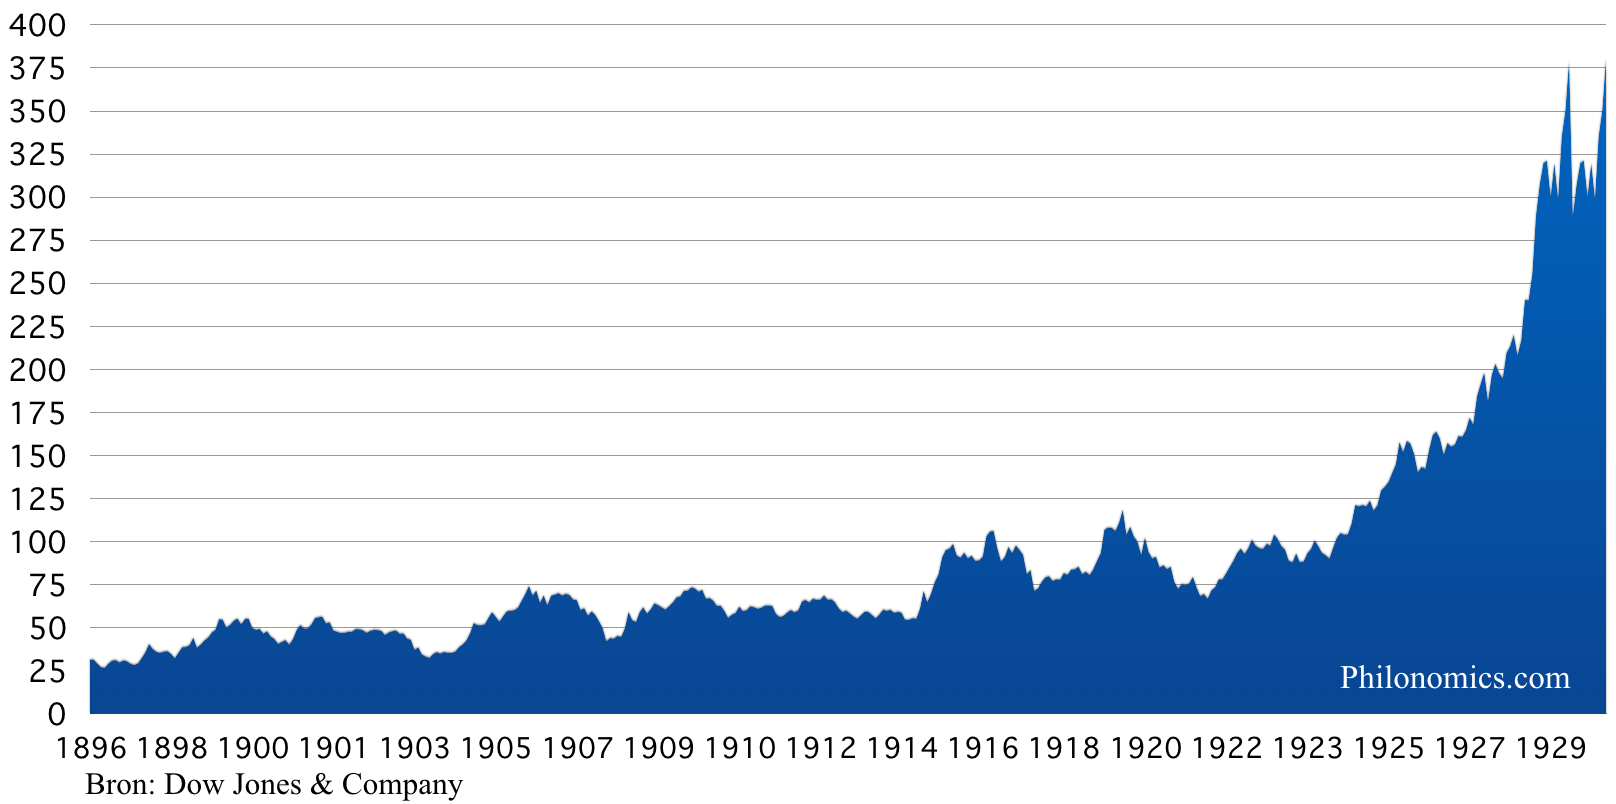 [7] Dow Jones Industrial Average Index 1896-1929